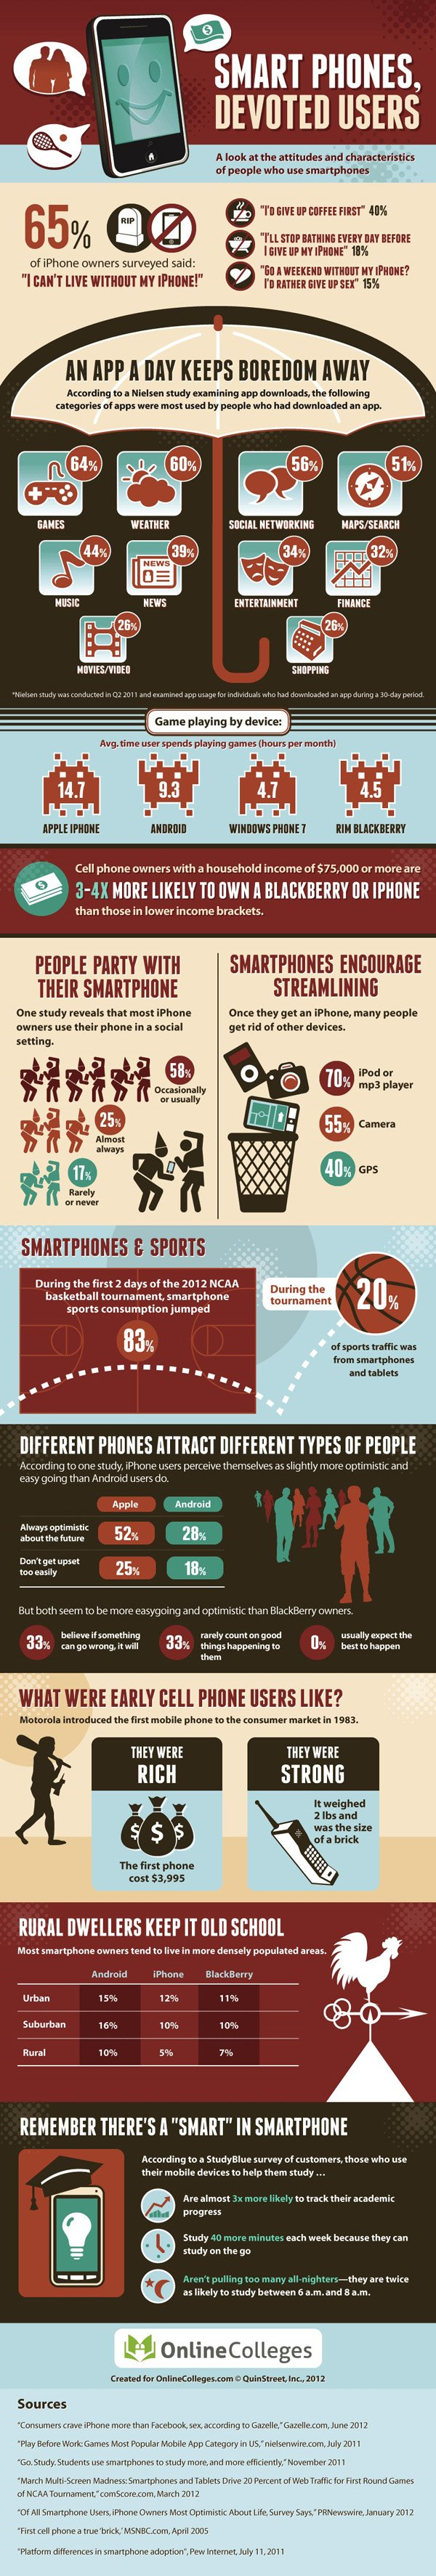 Characteristics of smartphone users